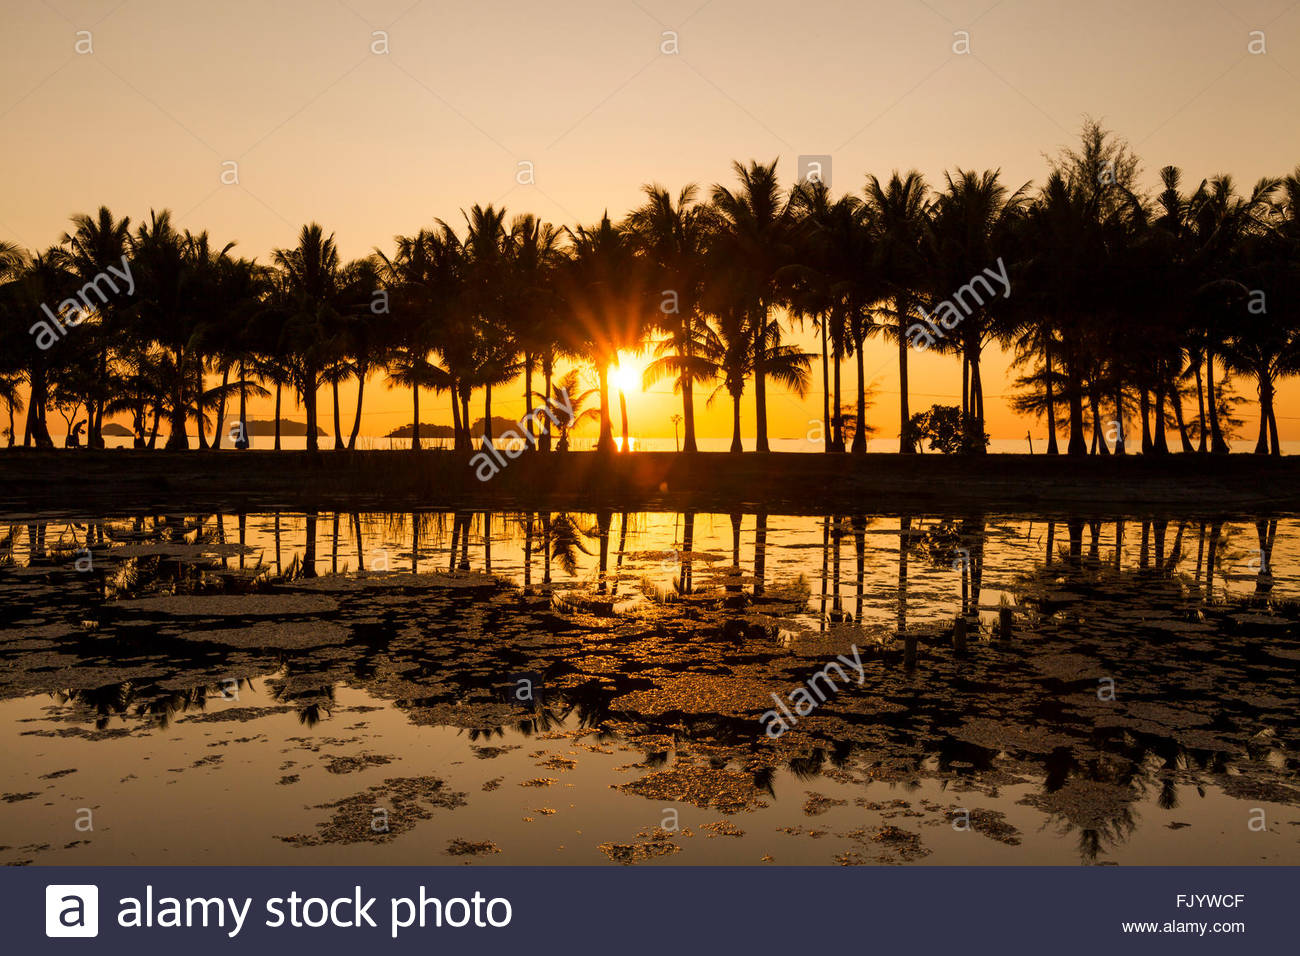 Coconut palms on the sandy beach of the tropical island. Koh Chang. Thailand. - Stock Image